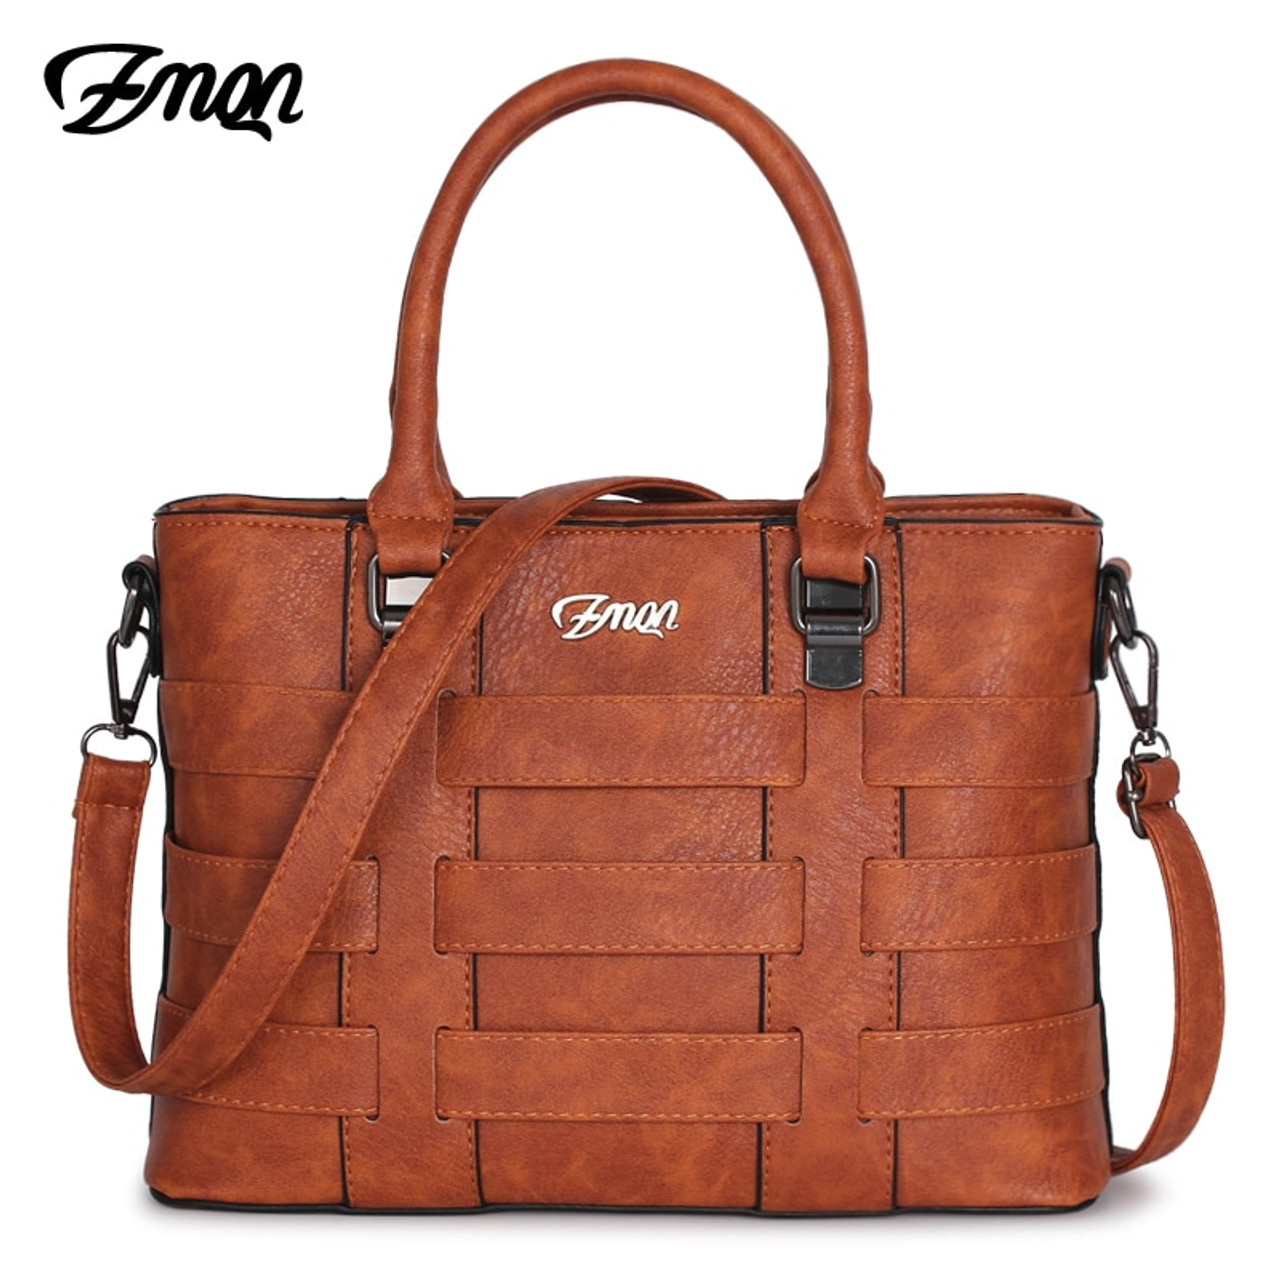 514ed496d9 ZMQN Women Bags Handbags Women Famous Brands PU Leather Handbag Ladies Hand  Bags For Women 2018 ...